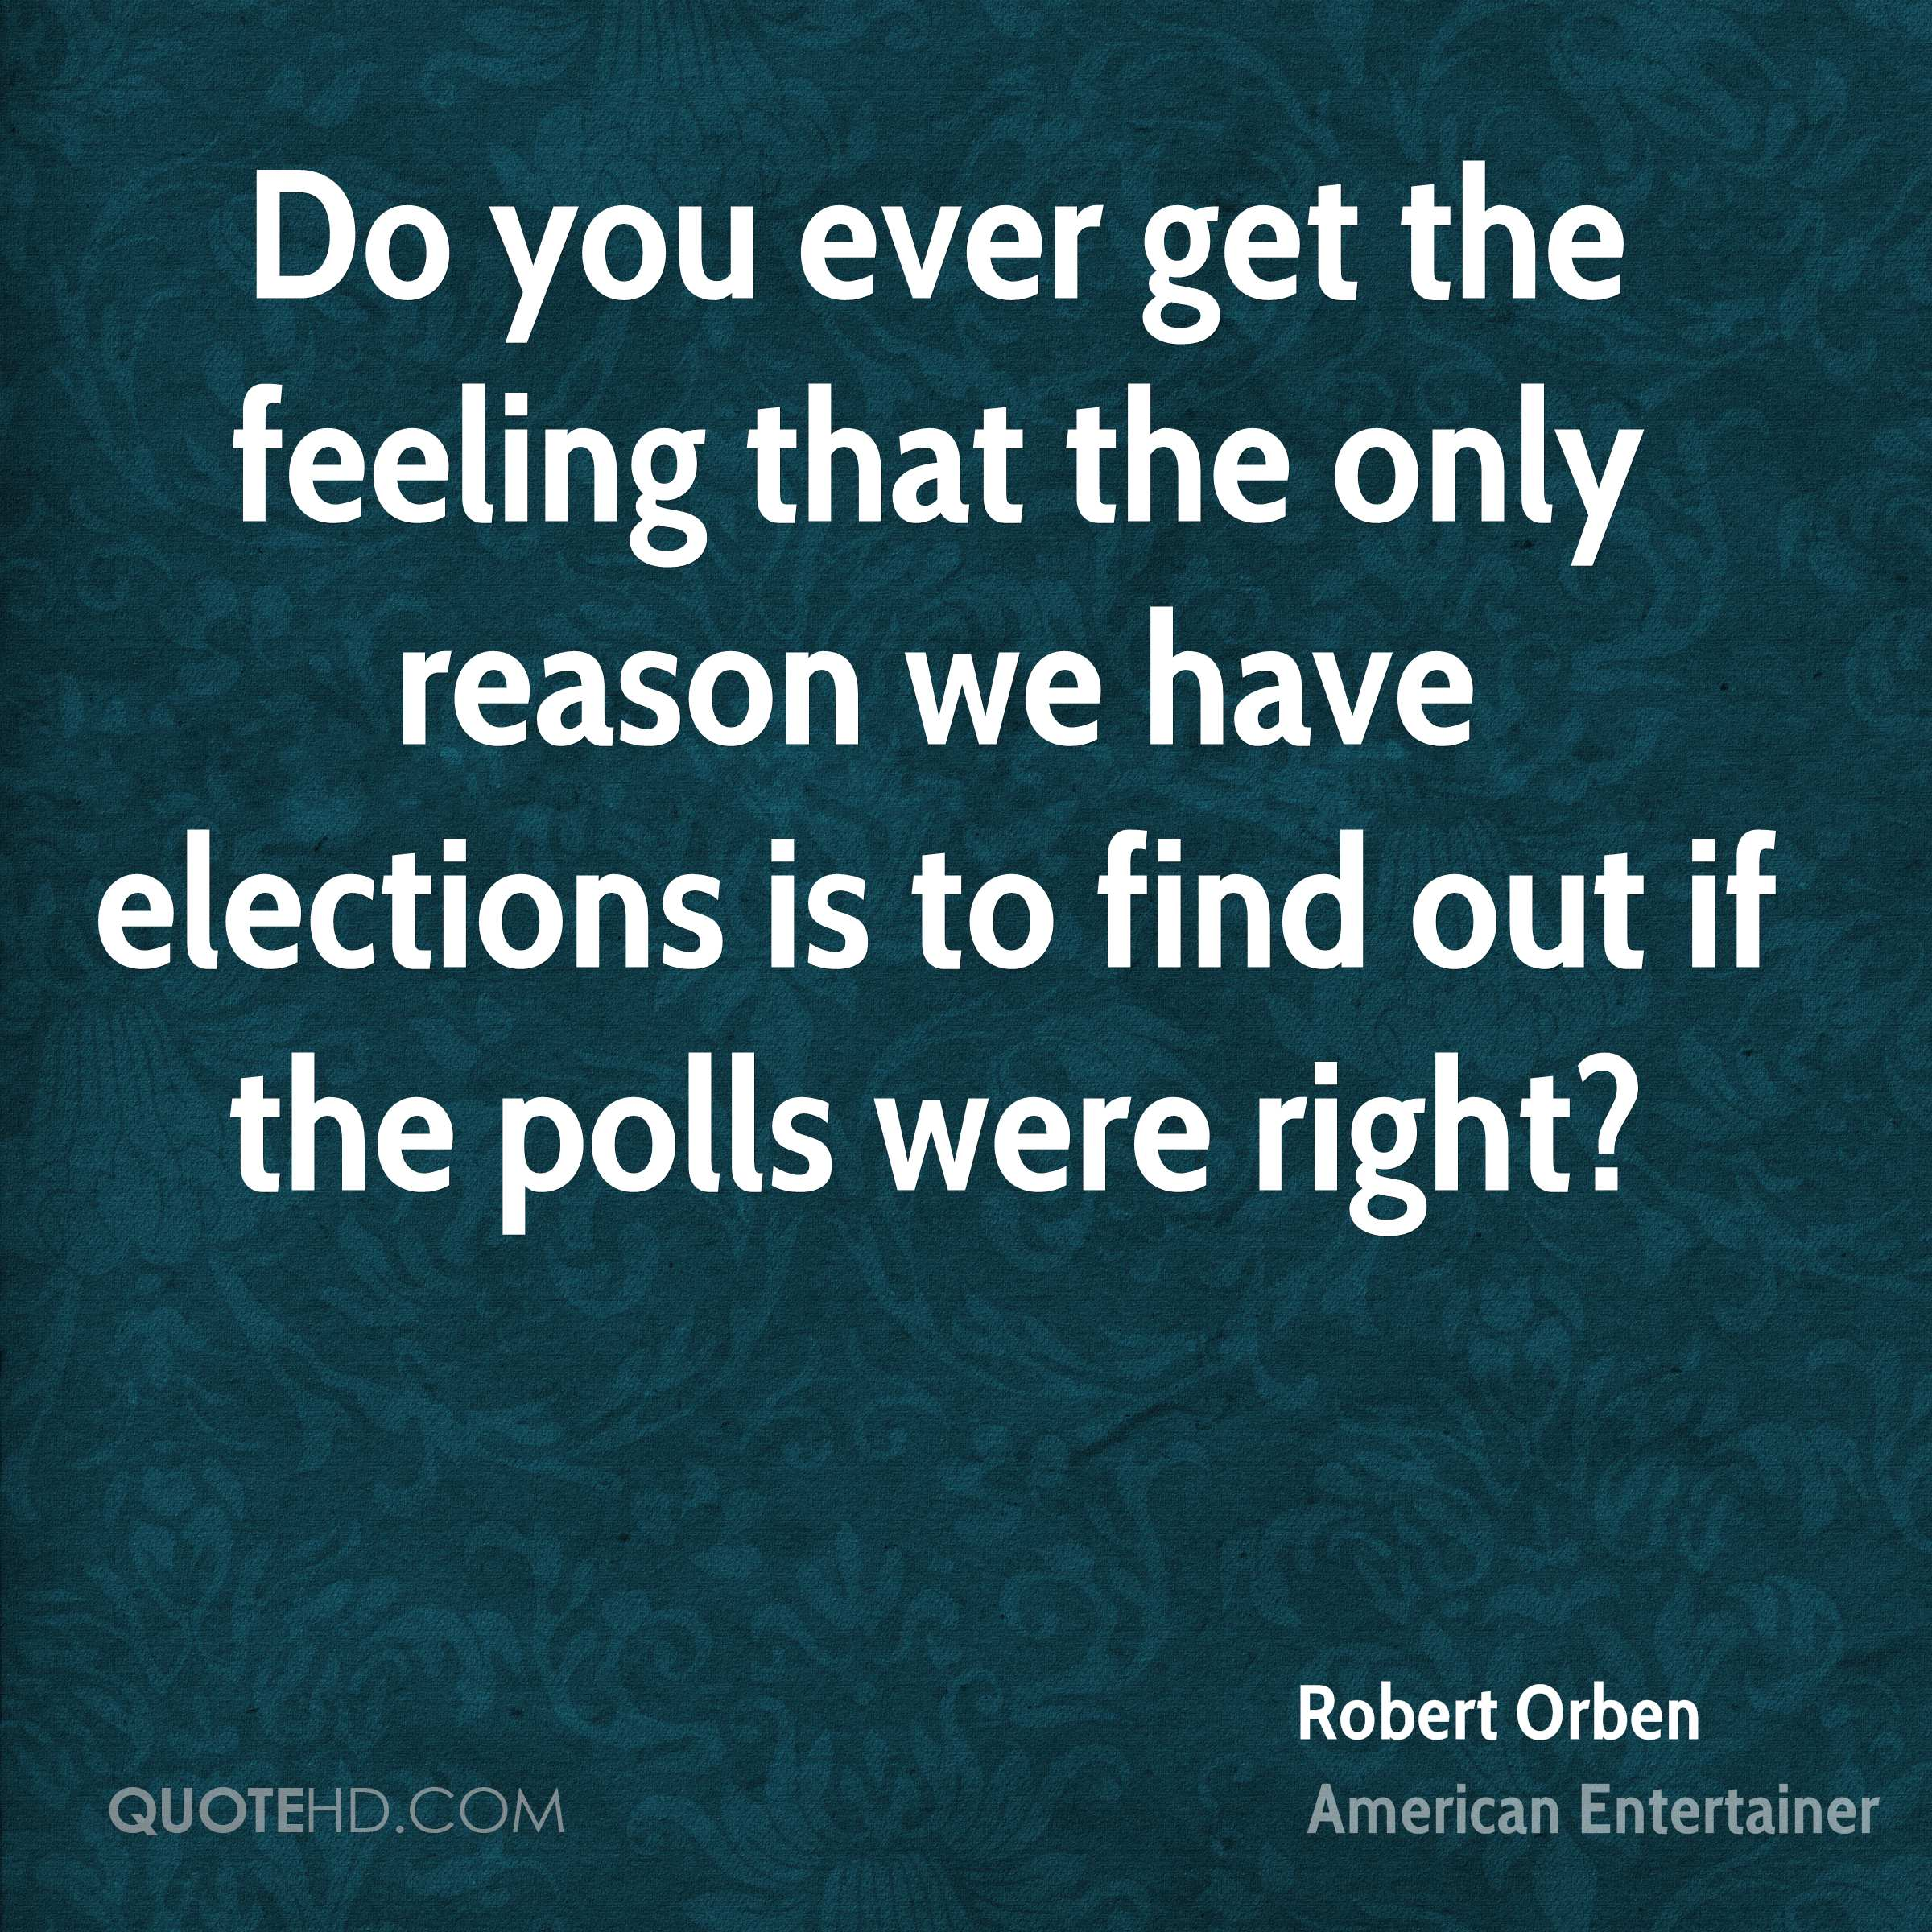 Do you ever get the feeling that the only reason we have elections is to find out if the polls were right?